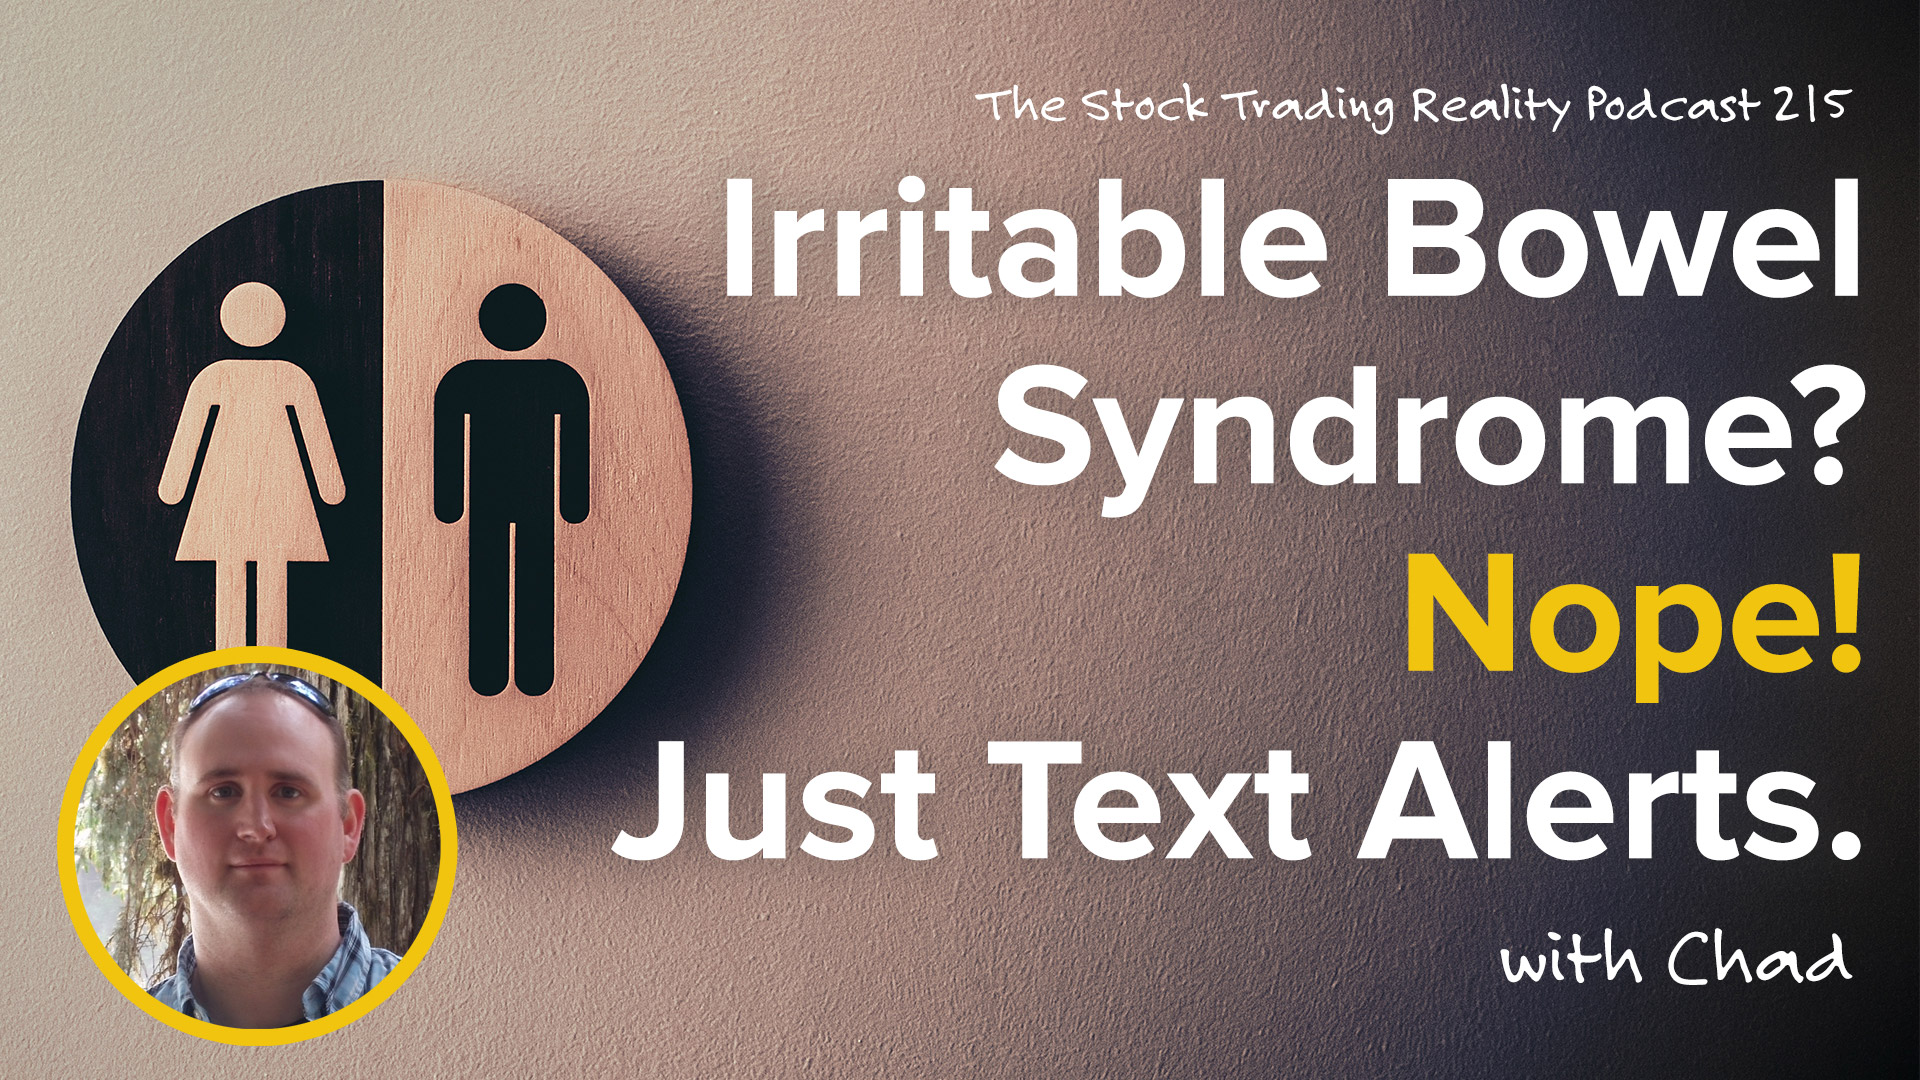 STR 215: Irritable Bowel Syndrome? Nope! Just Text Alerts.